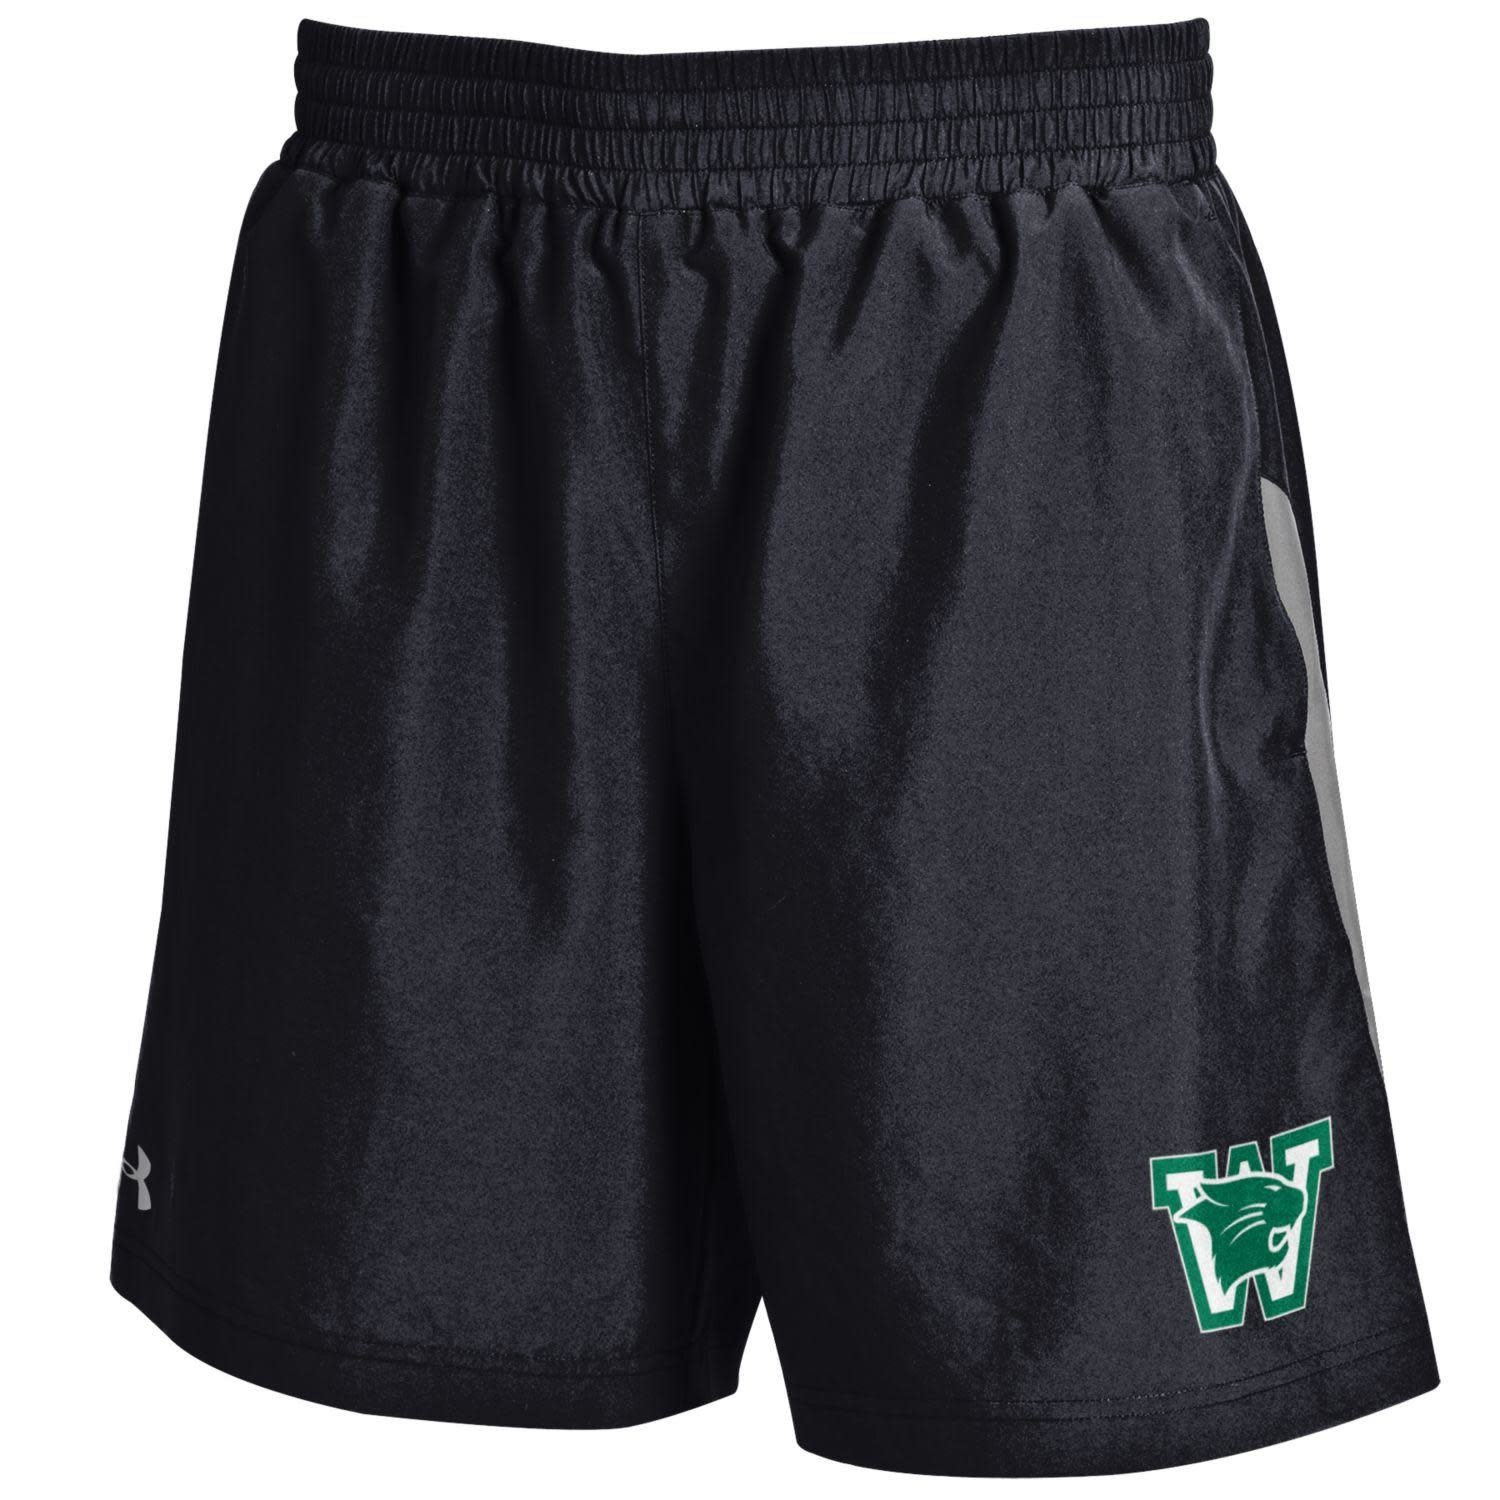 Under Armour Shorts: UA L Black Woven 7 Inch